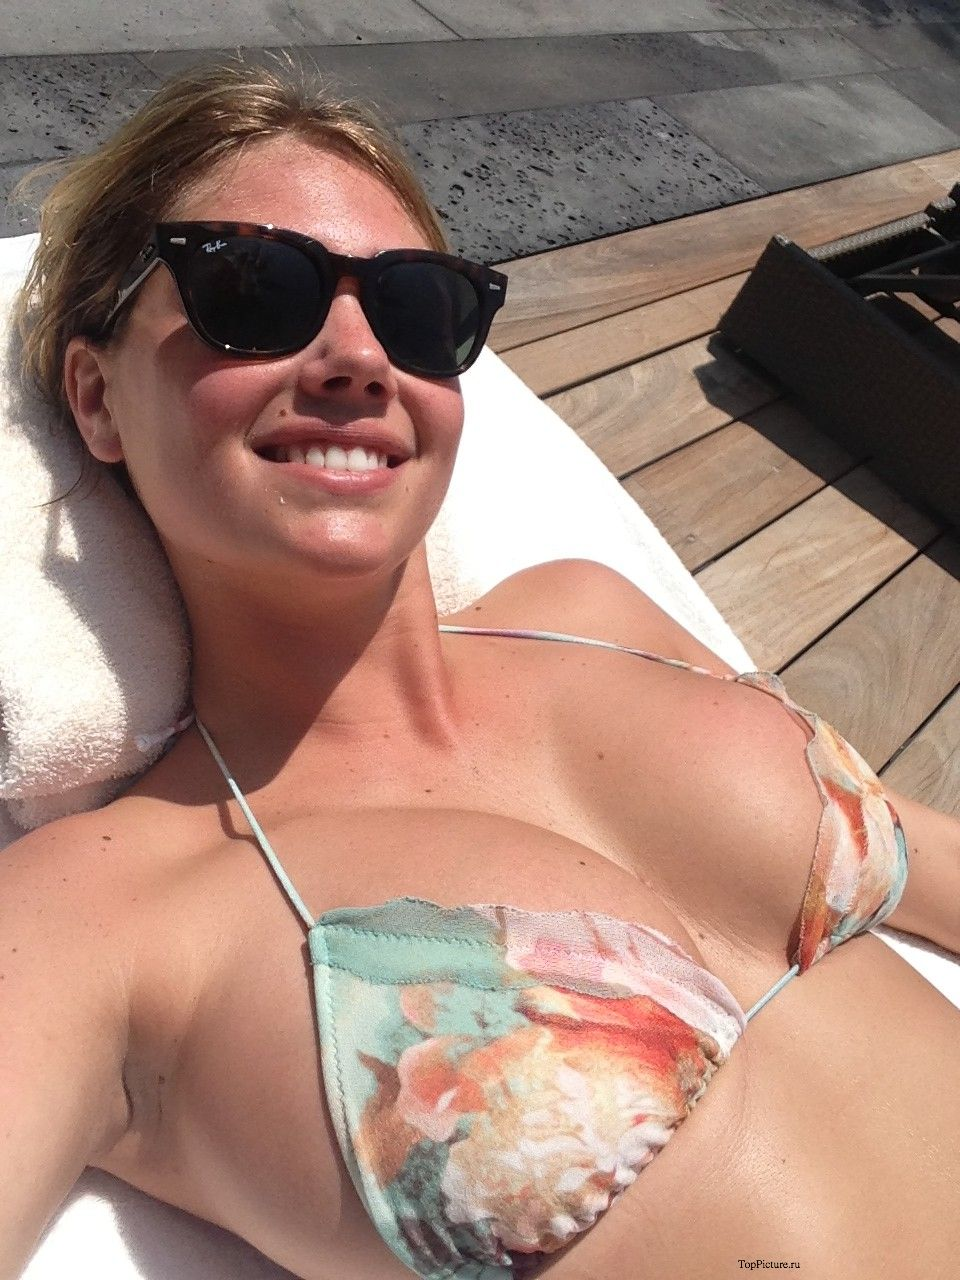 Sex photo of busty hot model Kate Upton 13 photo